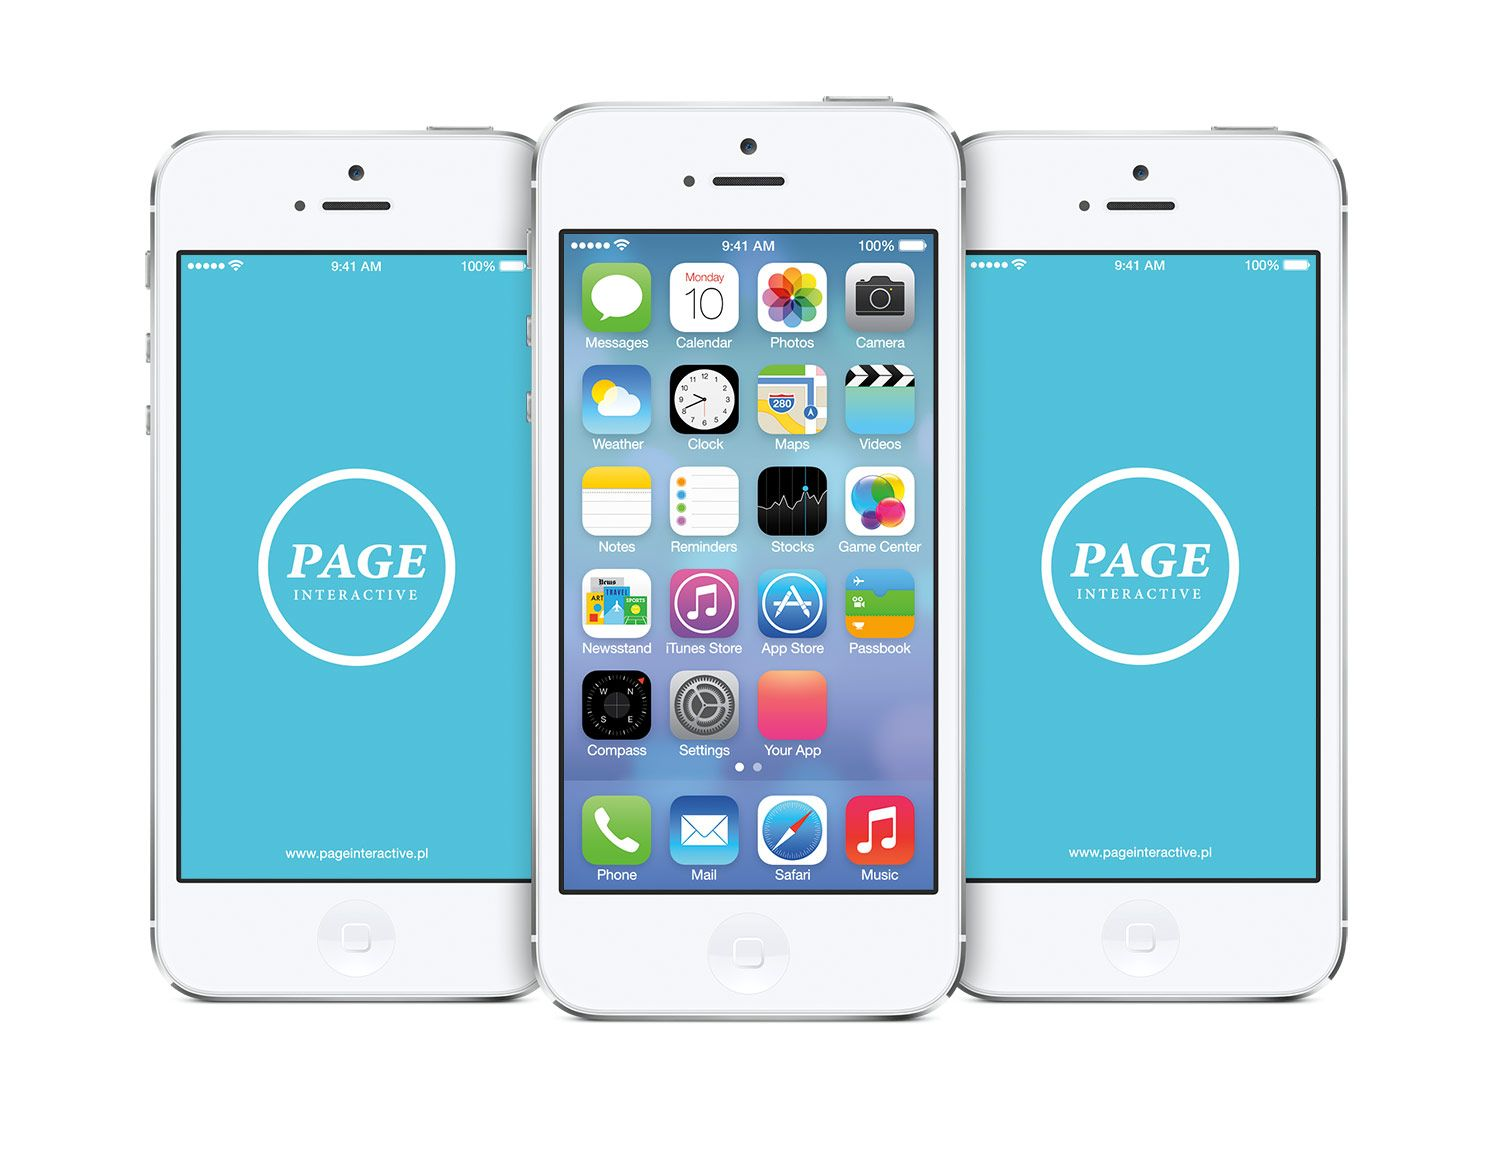 Download Iphone Ios 7 Home Screen Free Psd Mockup Free Mockup Mockup Free Psd Free Logo Mockup Free Mockup